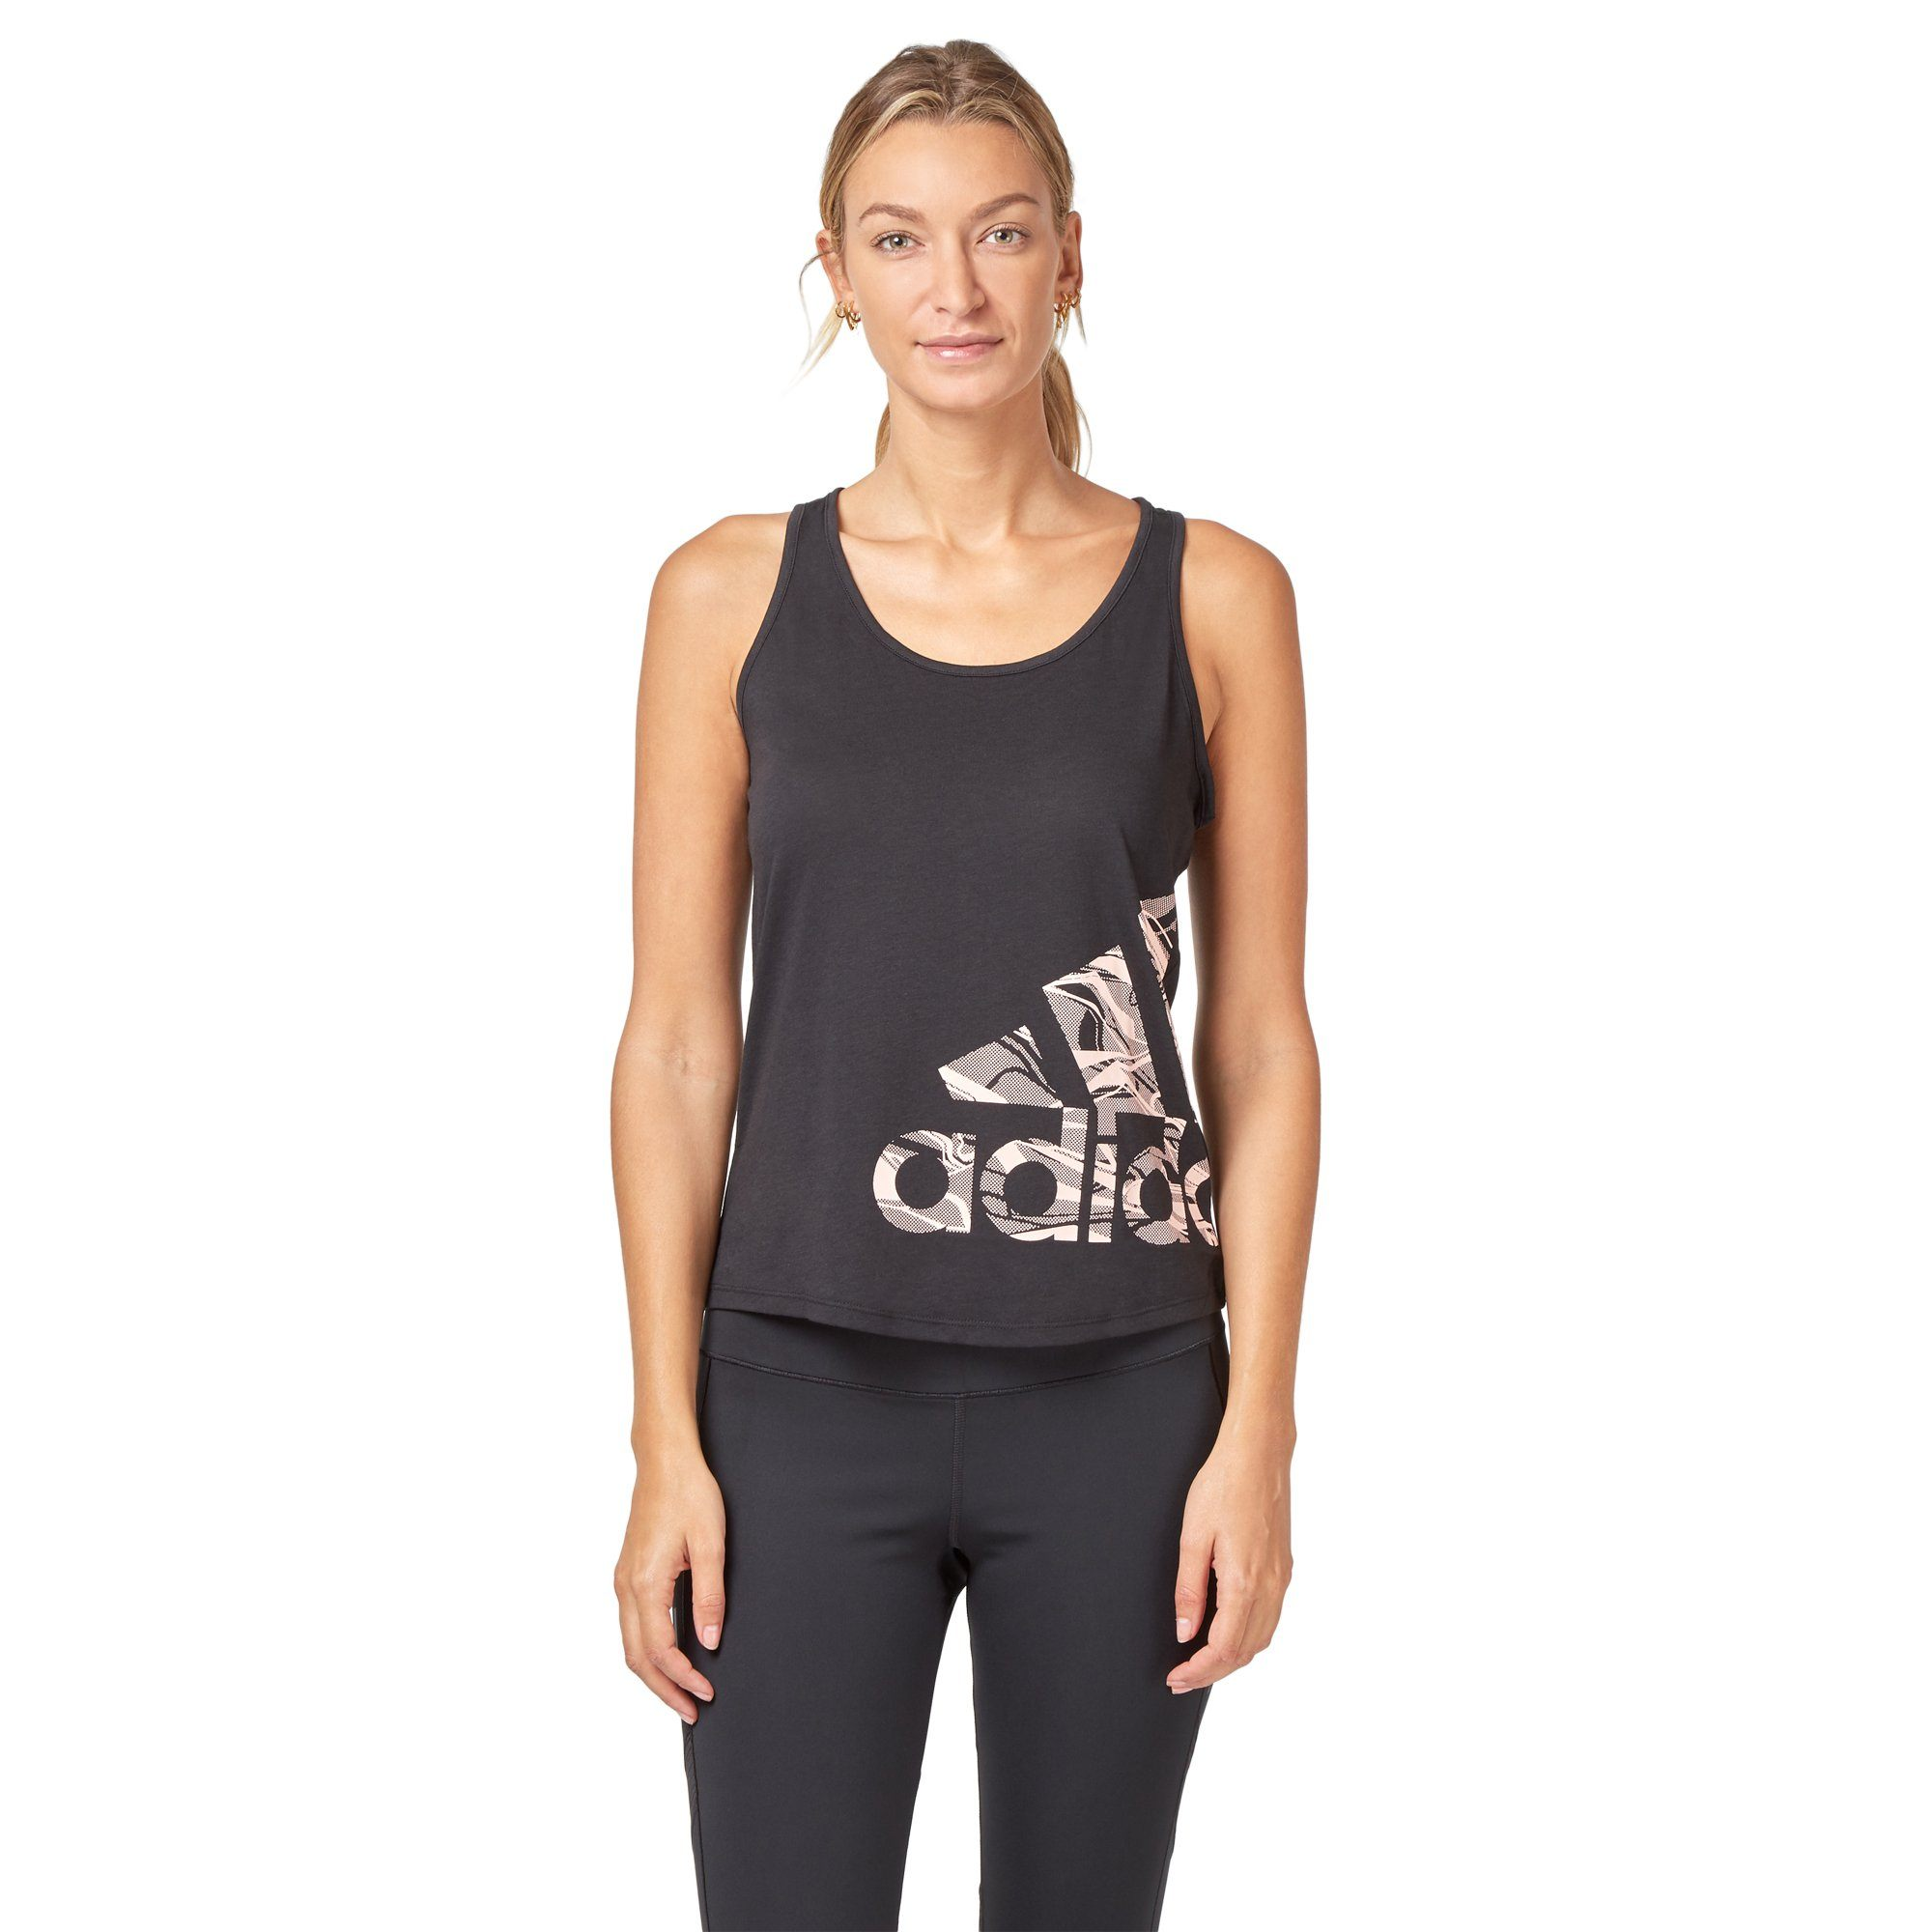 Adidas Women's Logo Tank Top - Black SportsPower Geelong  (2012421095483)